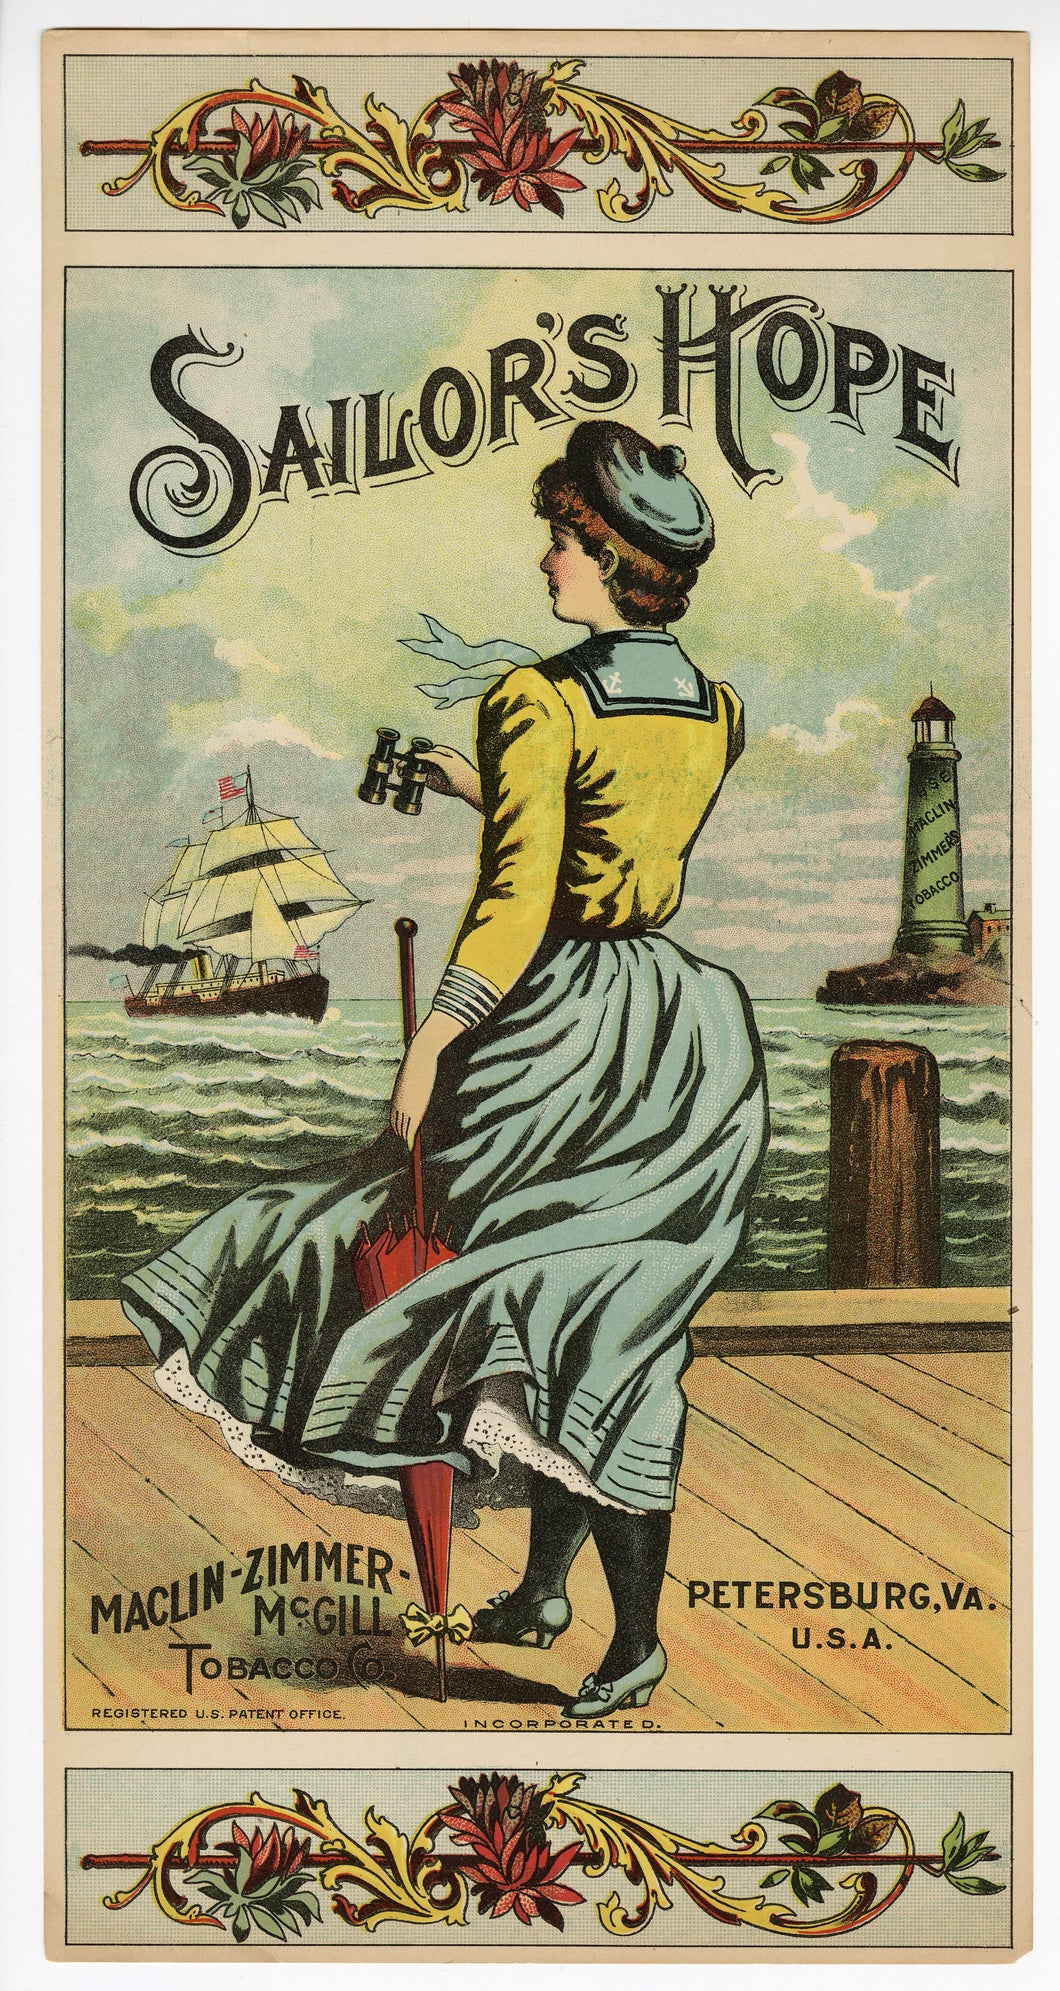 SAILOR'S HOPE Caddy Label || Maclin-Zimmer McGill, Petersburg, Virginia, Woman Looking out to Sea, Old, Vintage - TheBoxSF